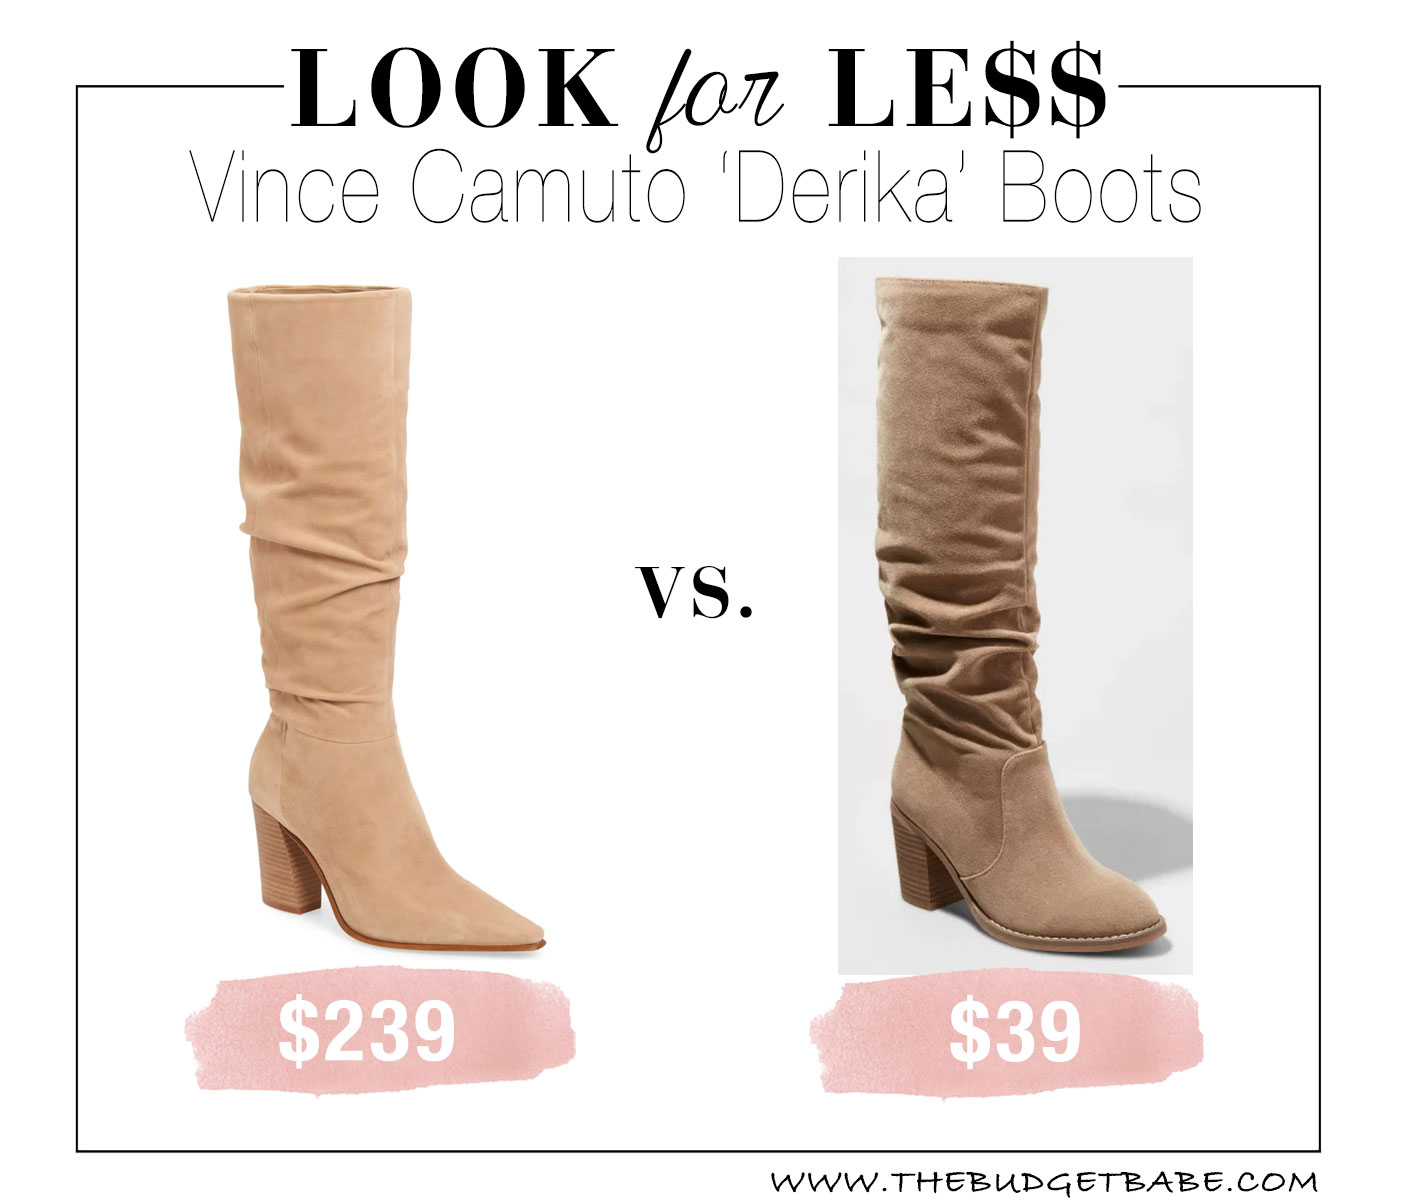 Vince Camuto Derika boots are so gorgeous but love that Target look for less!